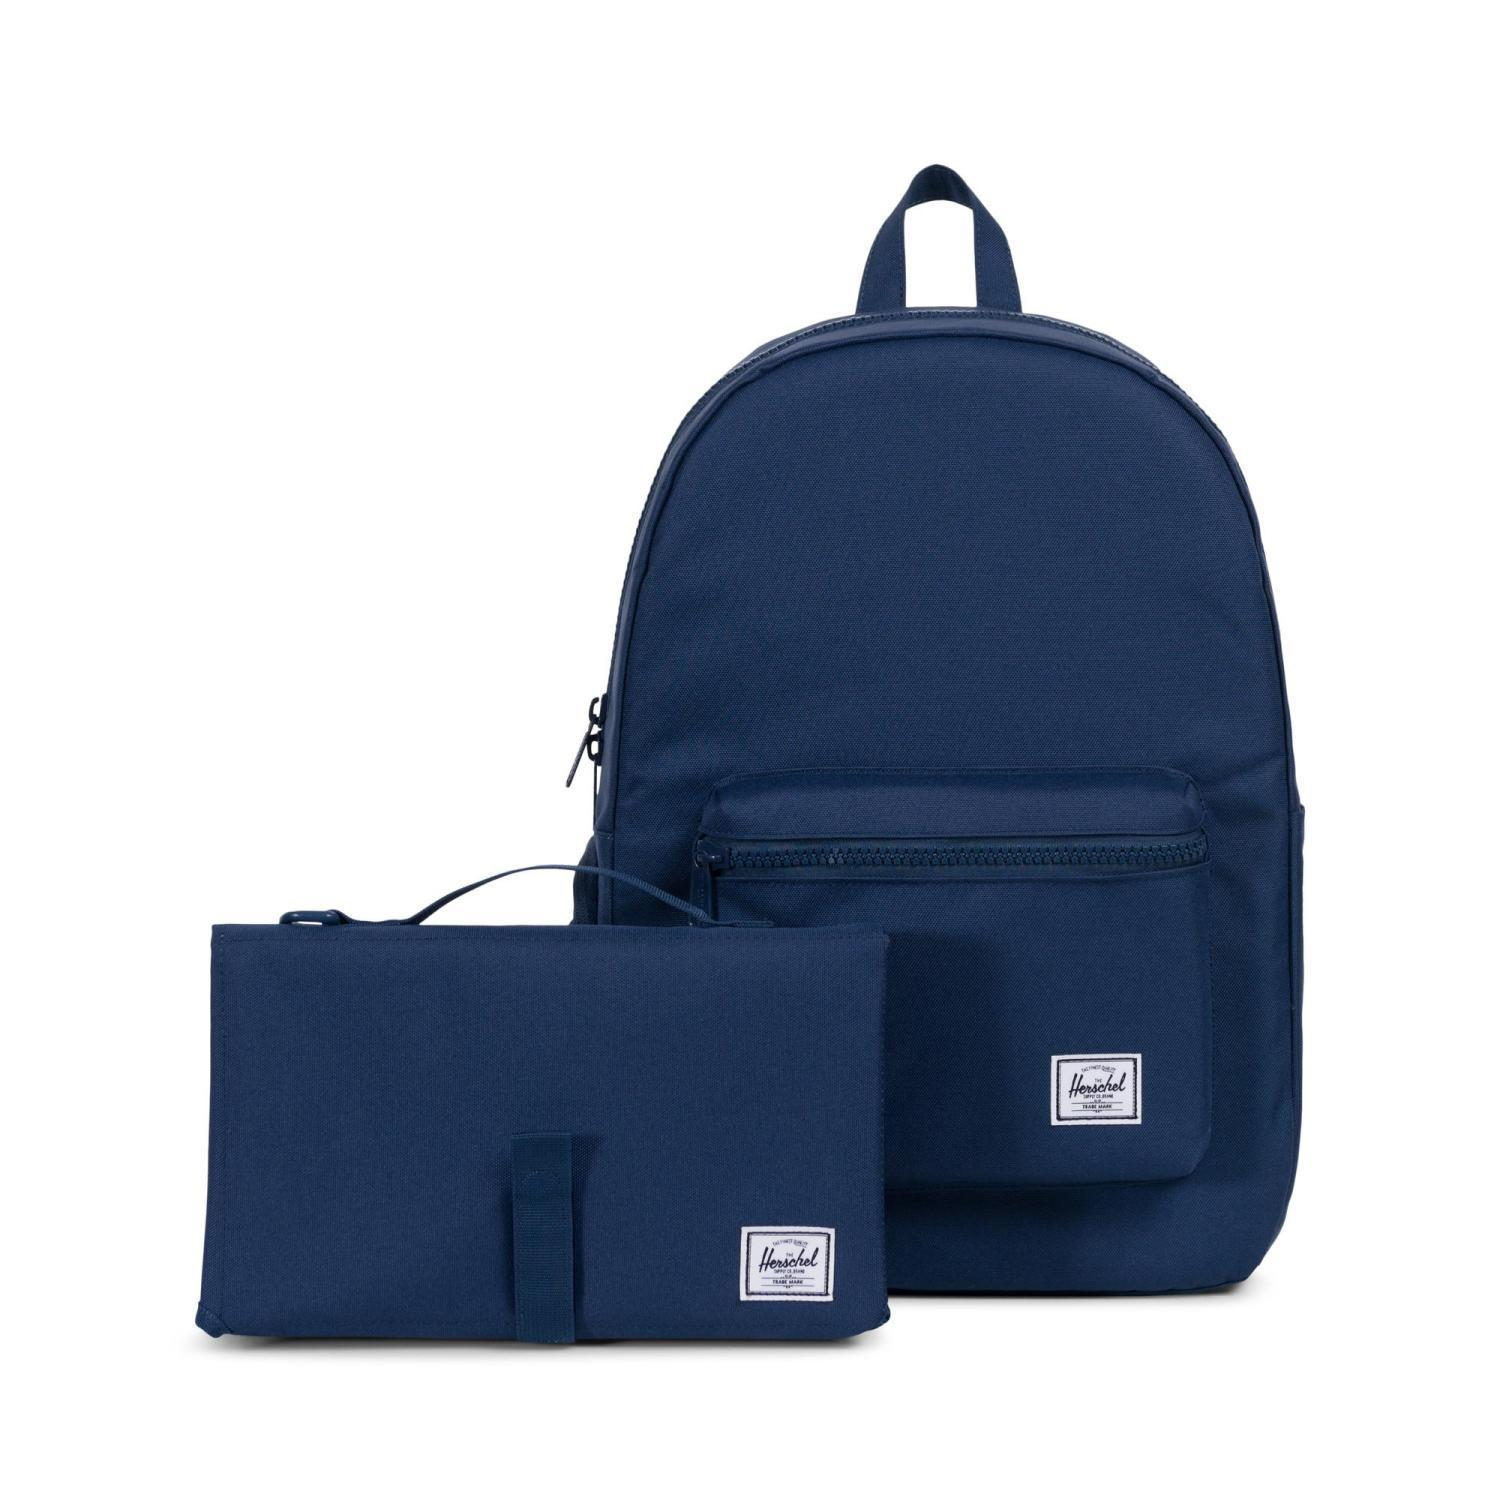 9c72c199aa Little herschel supply co accessories settlement backpack + sprout in navy